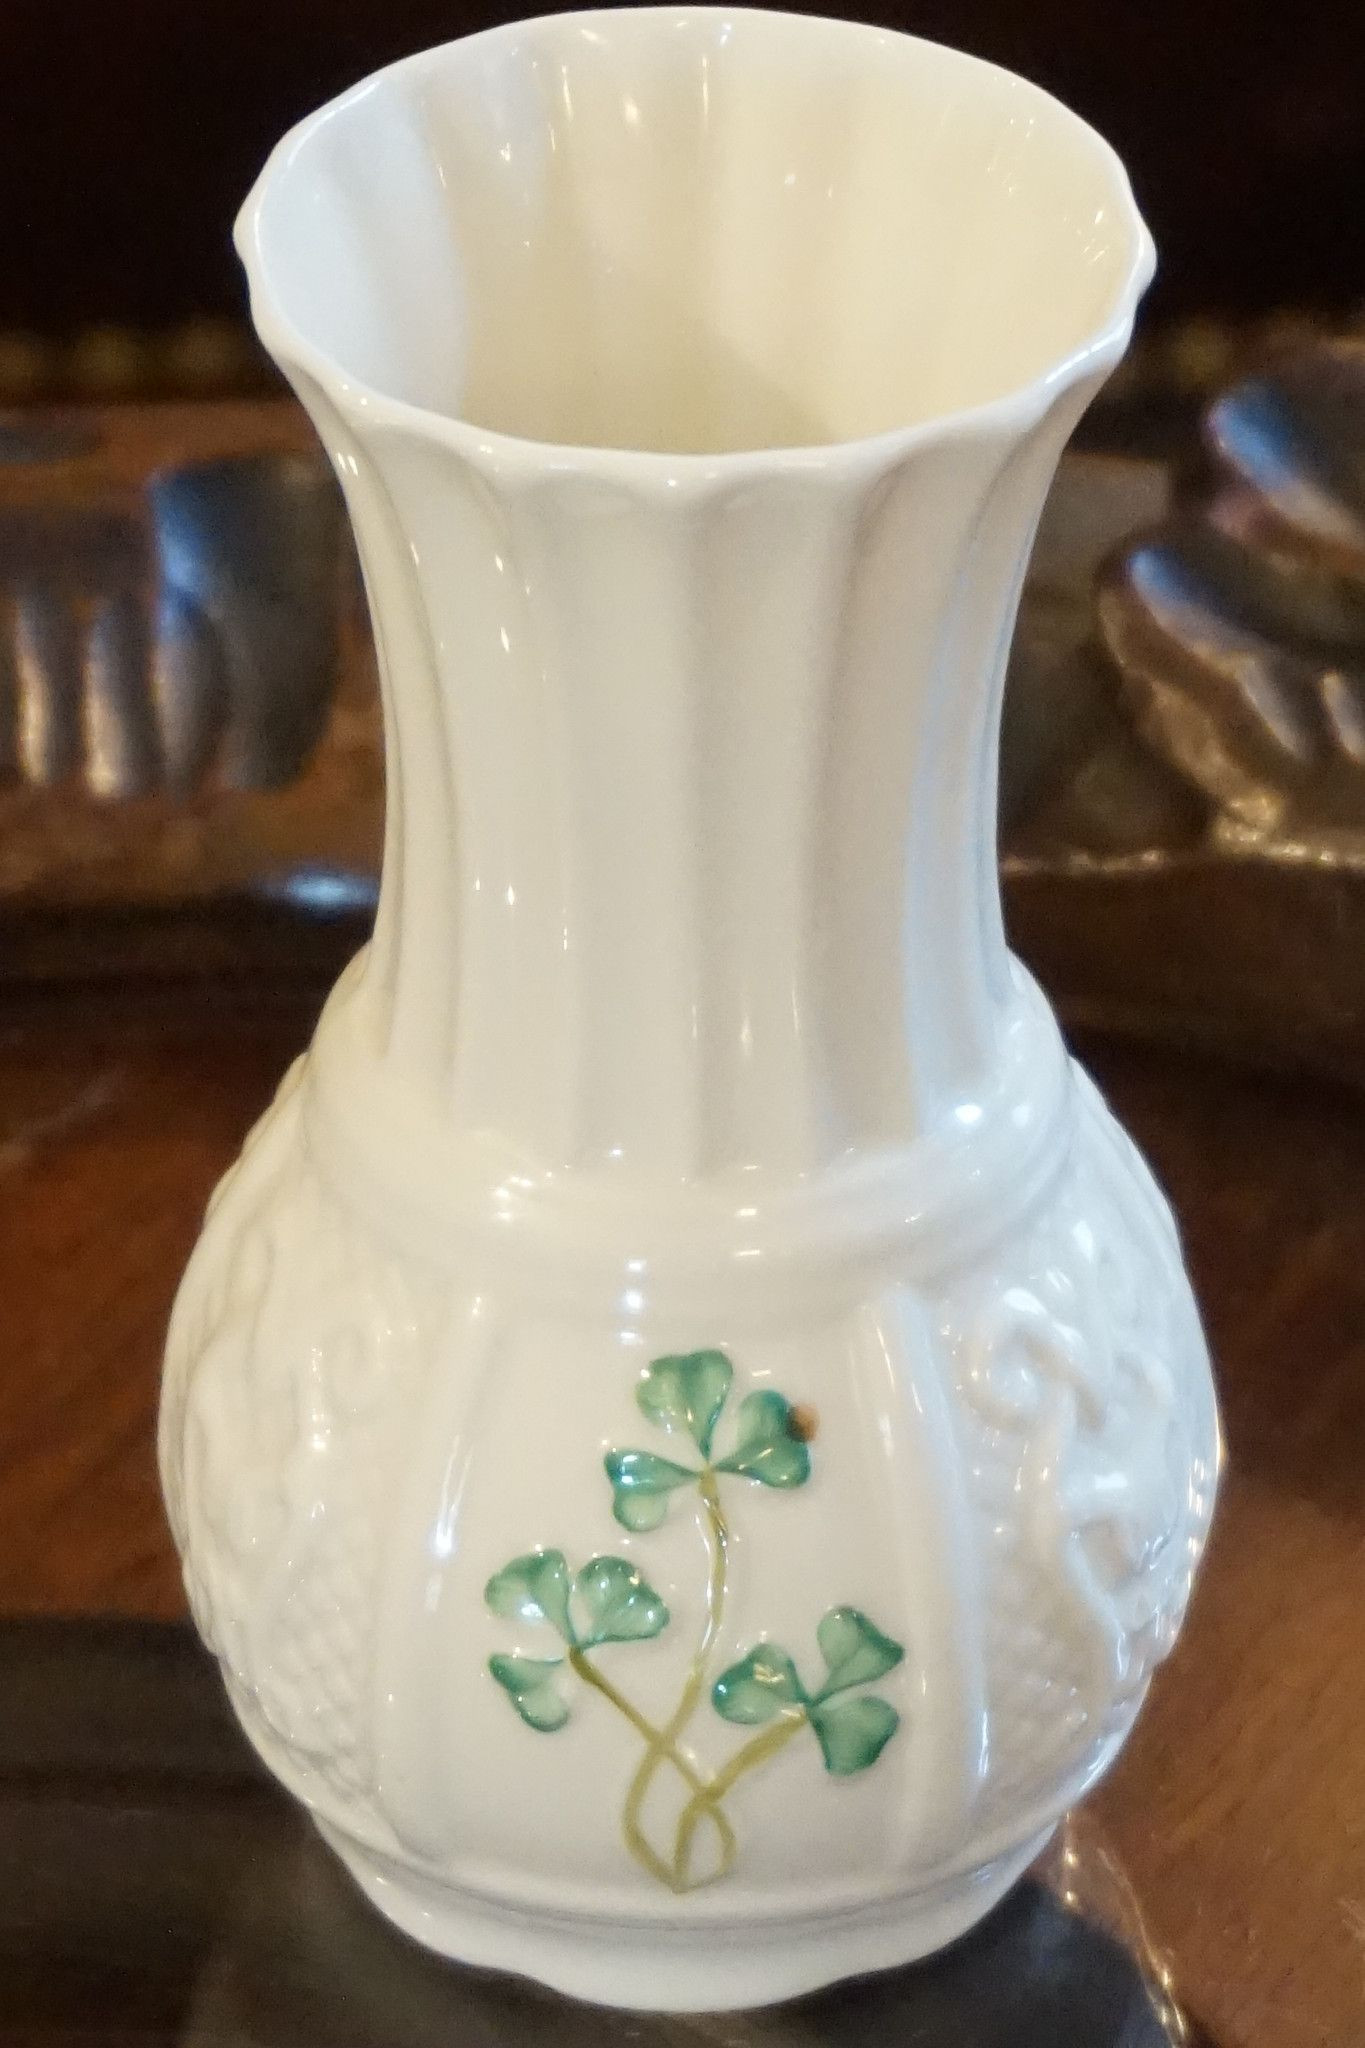 Belleek Tree Trunk Vase Of Belleek Nadine Spill Vase Beeleek Pinterest Vase Ireland and Regarding Belleek Nadine Spill Vase 1989 Made Of Ivory Porcelain with A Handpainted Shamrock Design Please Note the original Packaging is Not Available for